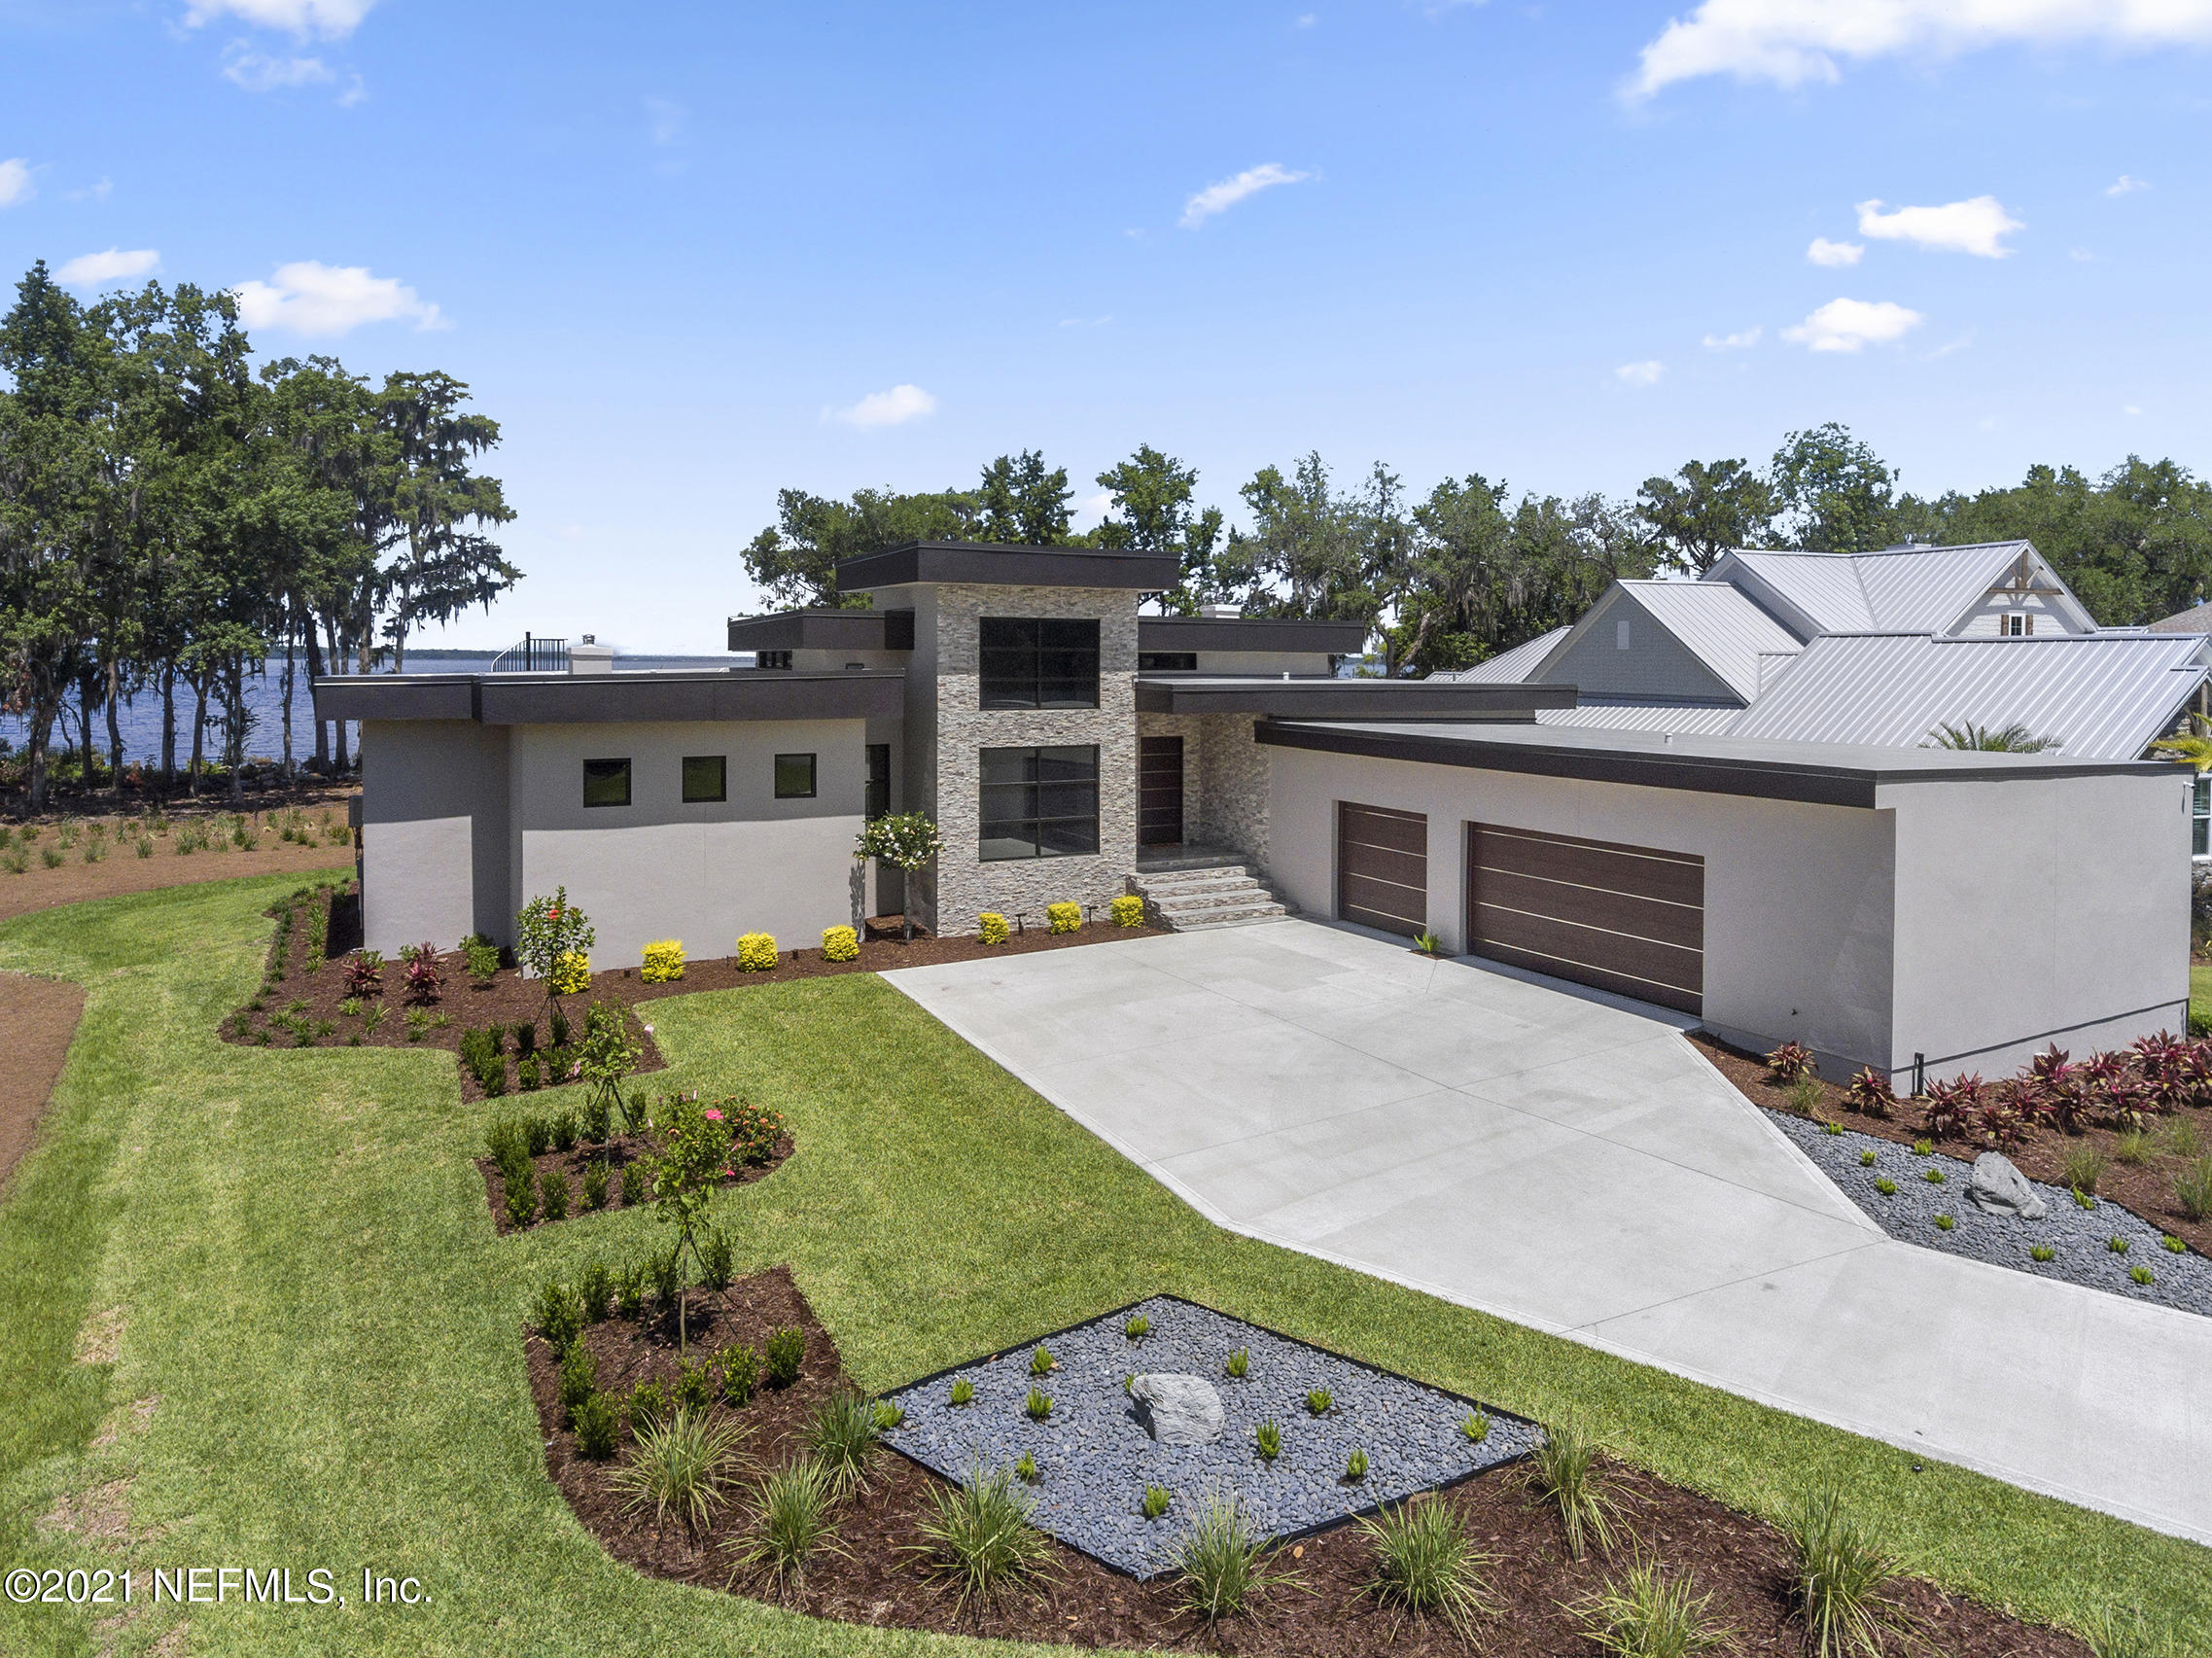 This Custom Contemporary River Retreat will impress the most discerning buyer with 350' of shoreline on the St. Johns River. CBS poured, Duro-last roof, commercial grade thermal impact resistant windows, whole home reverse osmosis, whole home generator, 1000 gal propane tank, 2 tankless water heaters, 2 linear gas fireplaces, Owners suite  fireplace is double sided.  Owner closet is dreamy. Chef's kitchen boasting high end appliances, double islands, impressive cabinetry, imported tile,  all with full river view, wait until you see the sunsets!  Superior craftsmanship/stonework, smart house. Winding staircase leads you to the rooftop area where your view is enhanced.  This space can be completed for entertaining. Simply one of a kind nestled  on a quite cul-de-sac street. Truly impressive